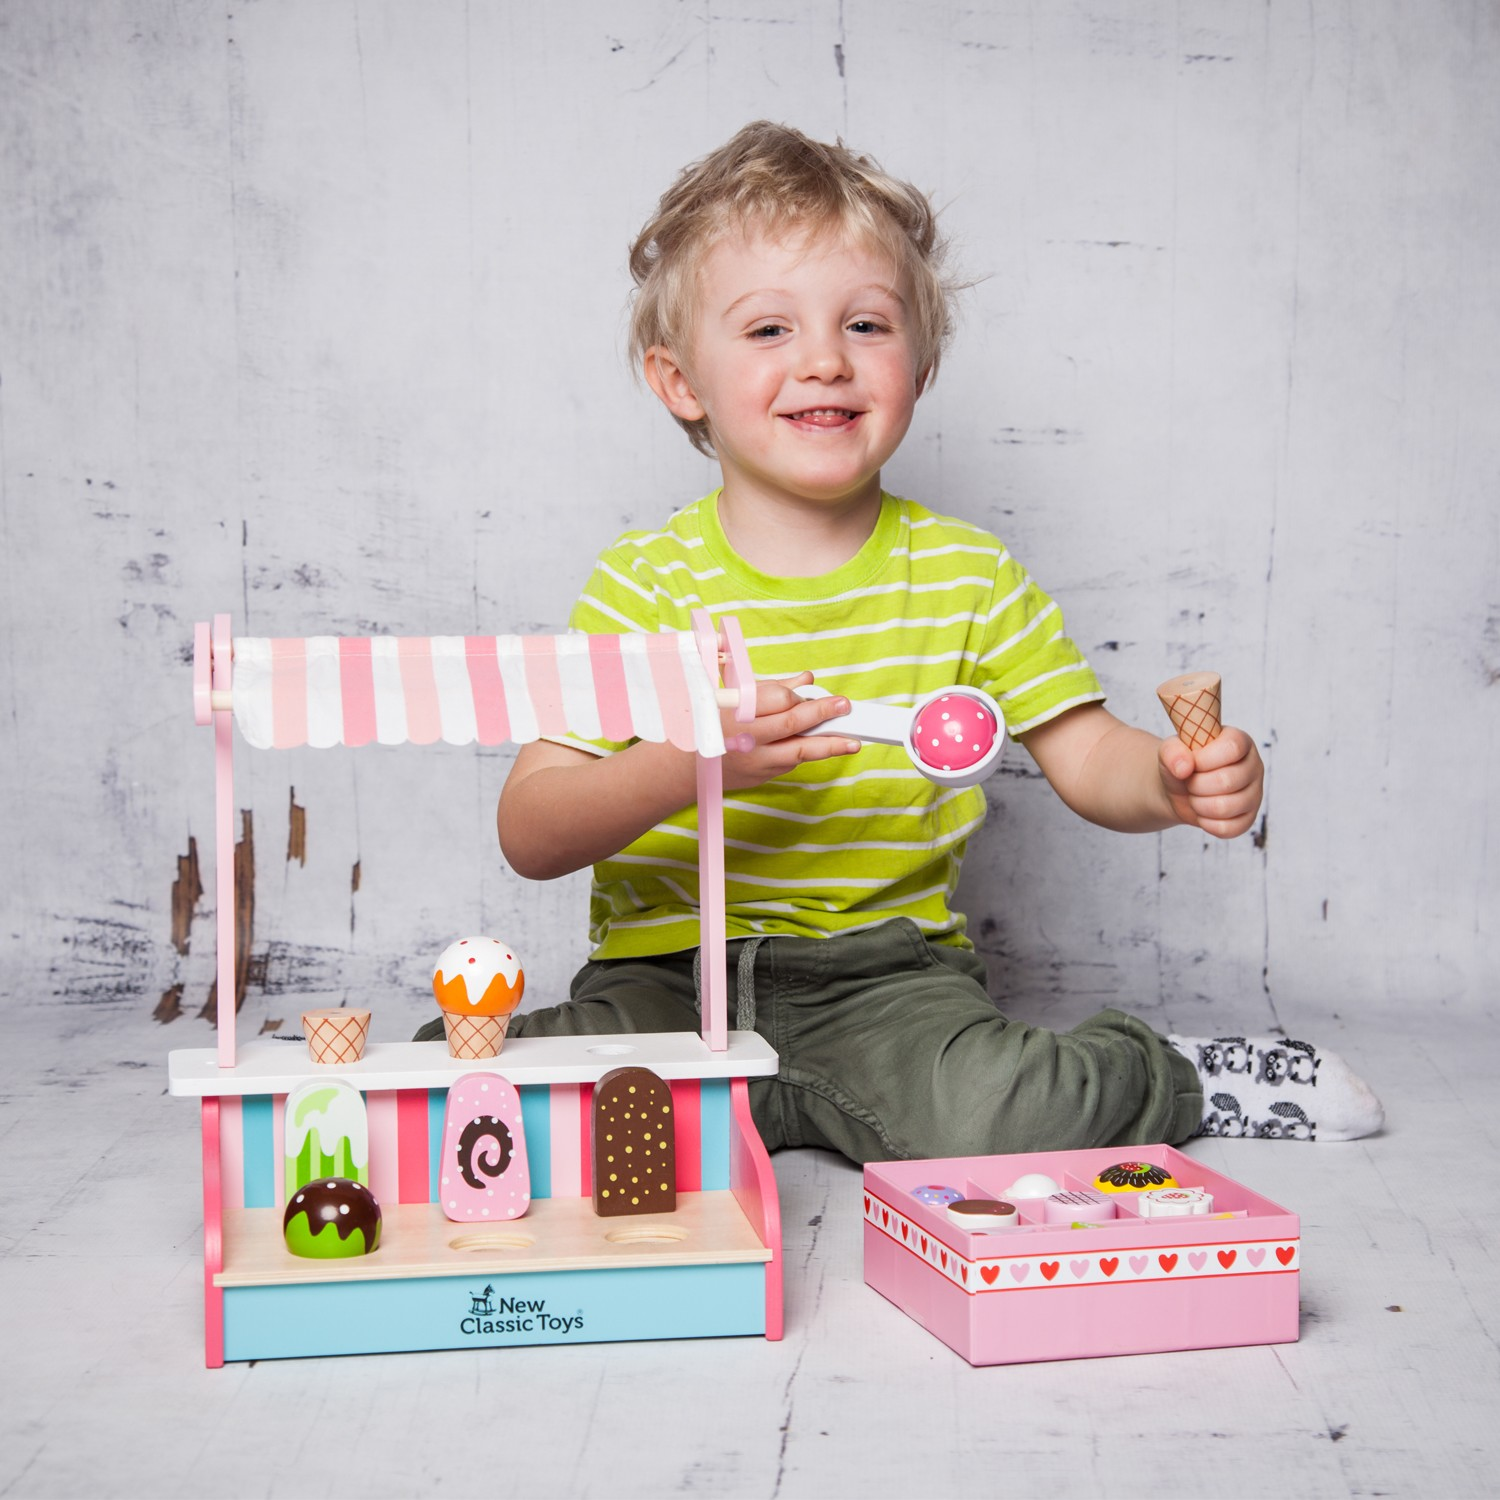 New Classic Toys Ice Cream Shop New Classic Toys